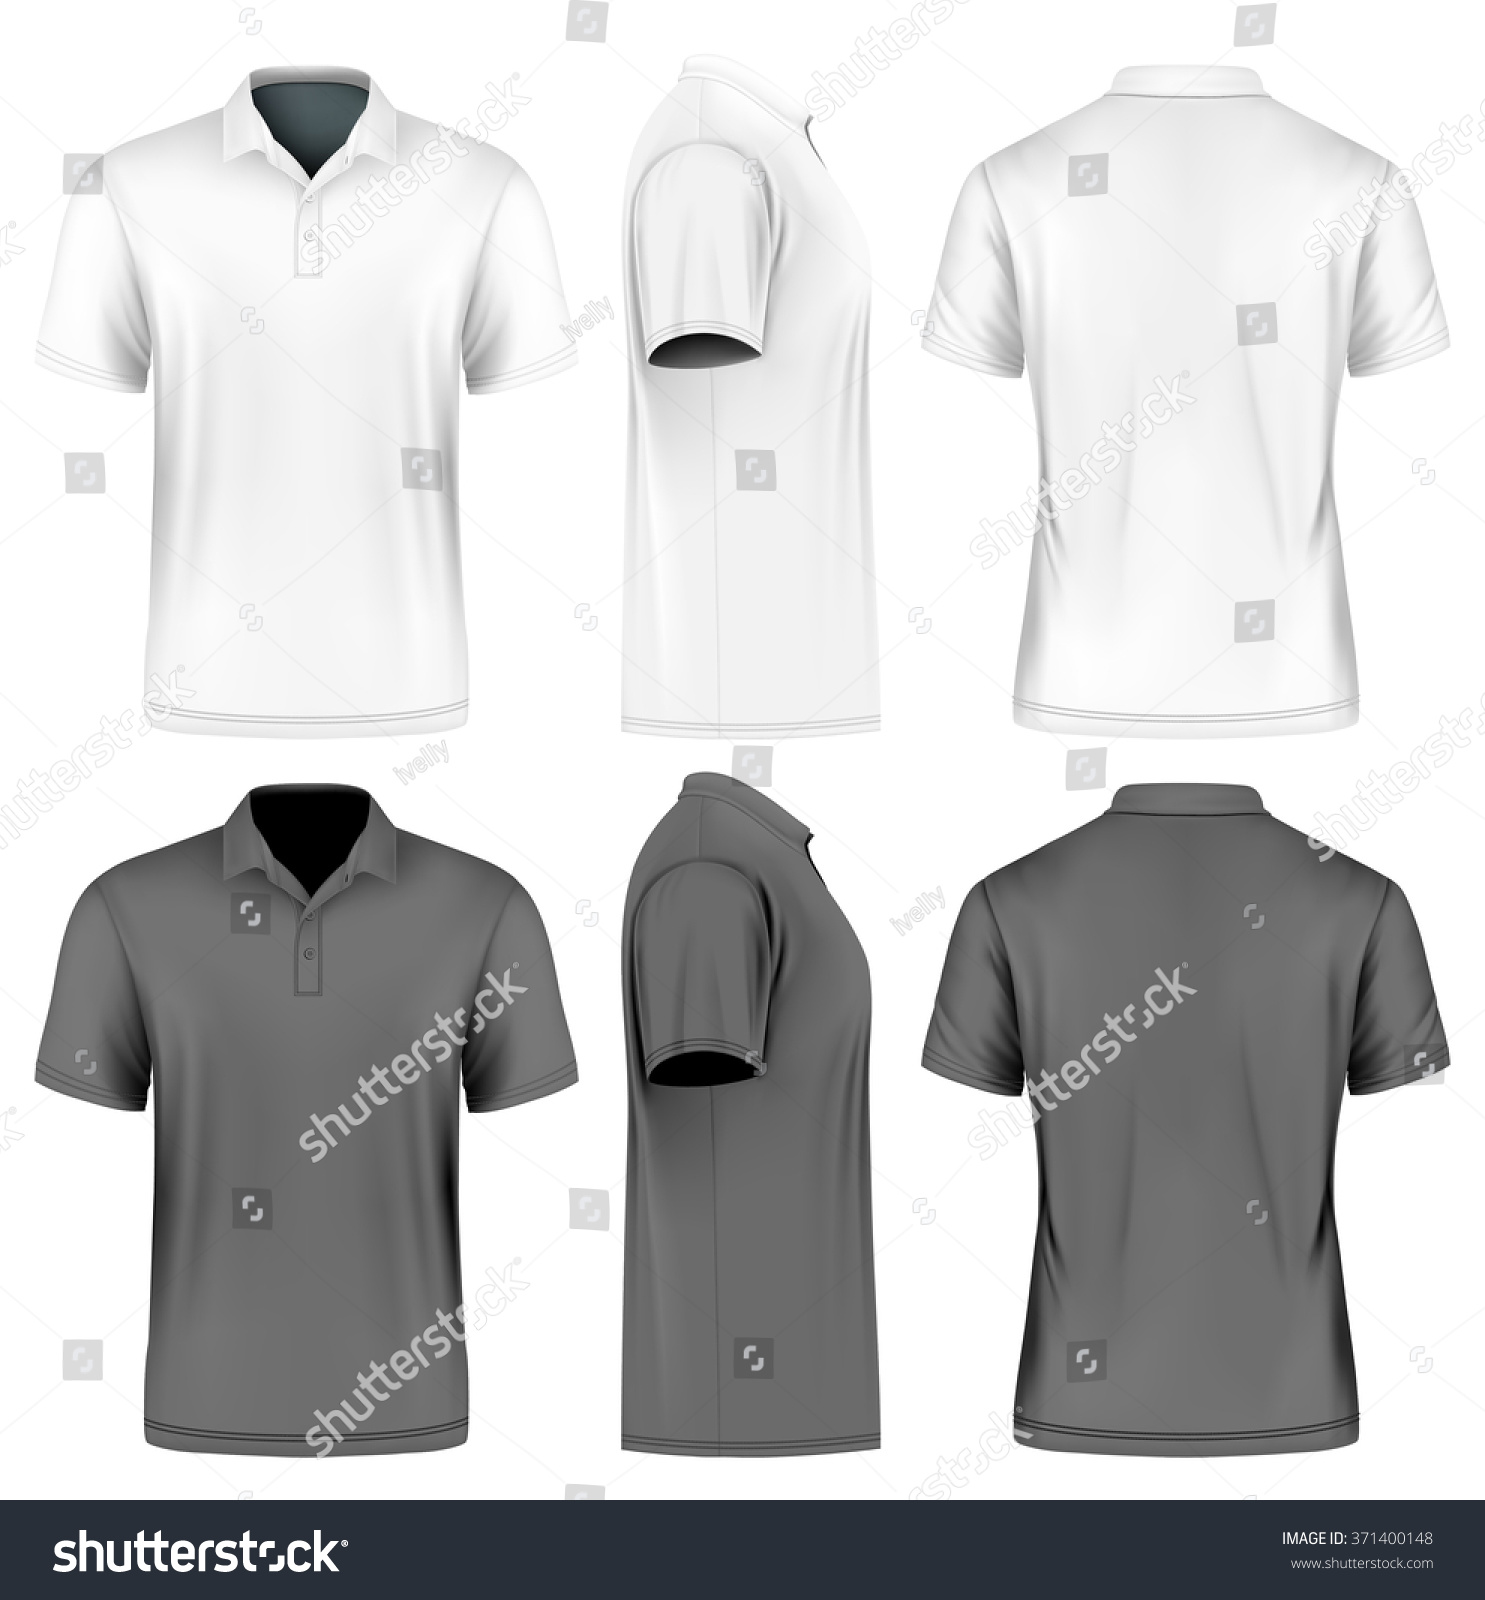 Image Result For Design Size On Front And Back Of Shirts: Mens Slimfitting Short Sleeve Polo Shirt Stock Vector